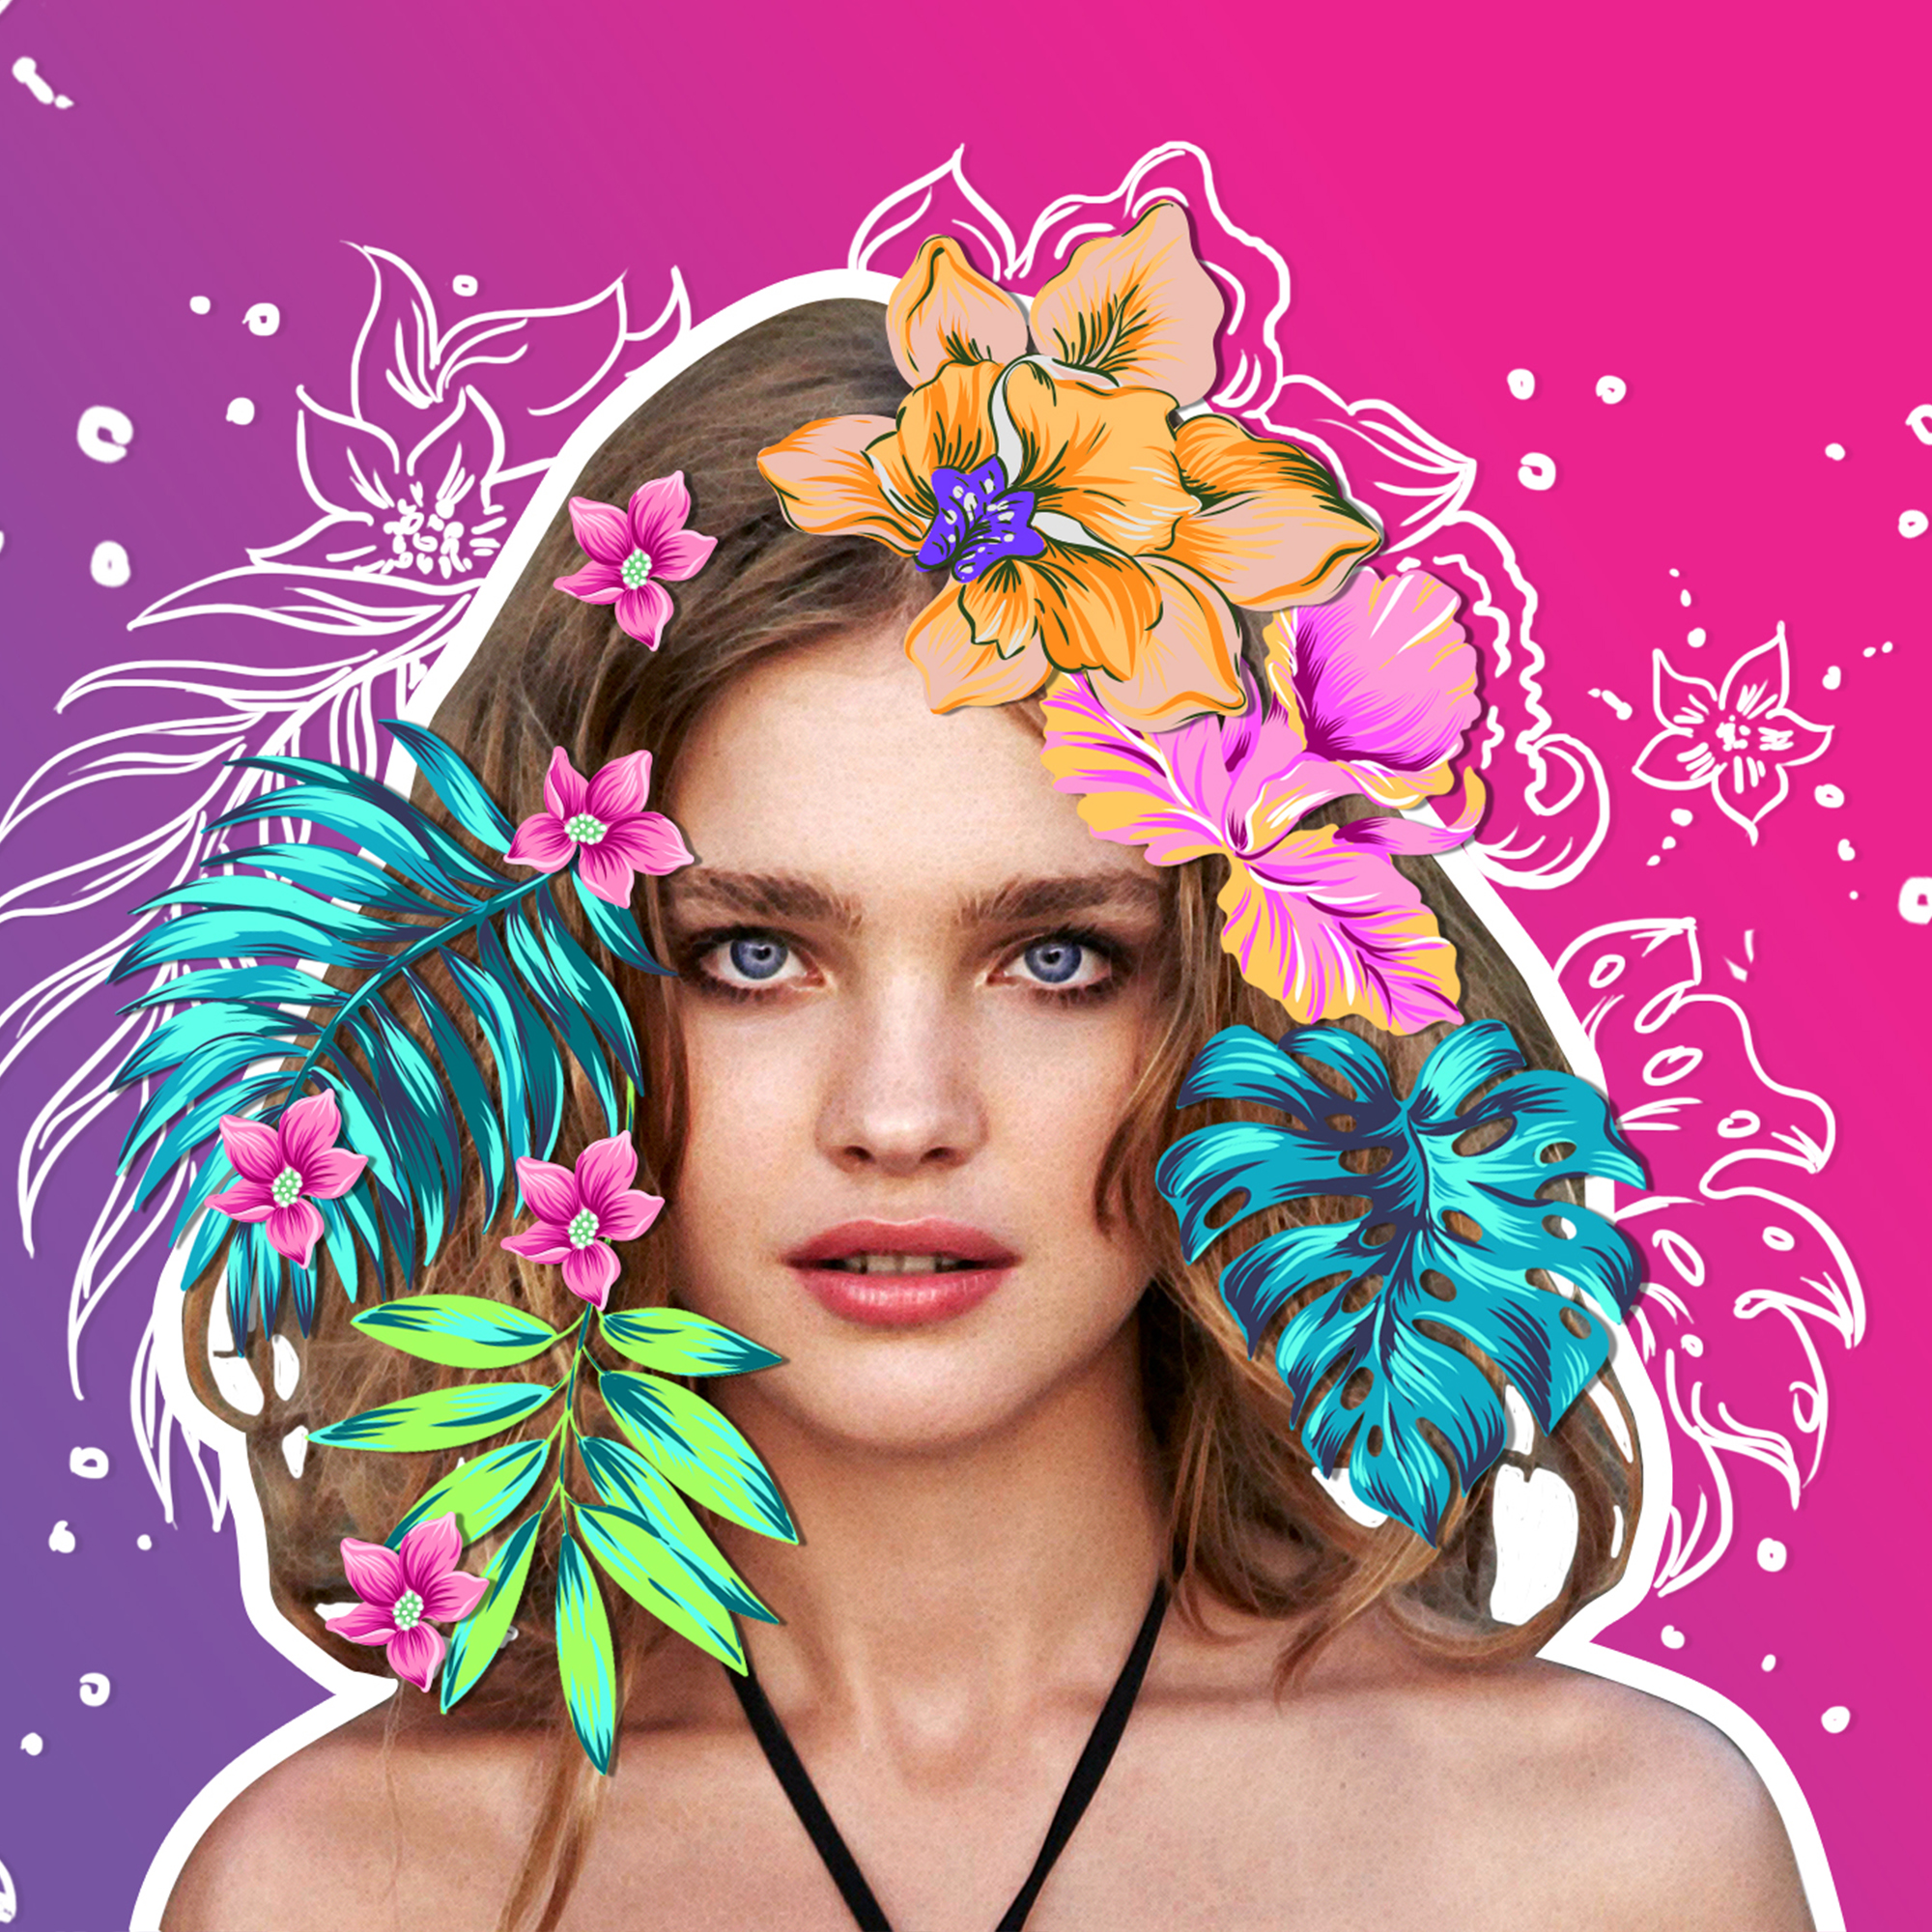 Supermodel and philanthropist Natalia Vodianova Joins PicsArt Team as Head of Aspiration